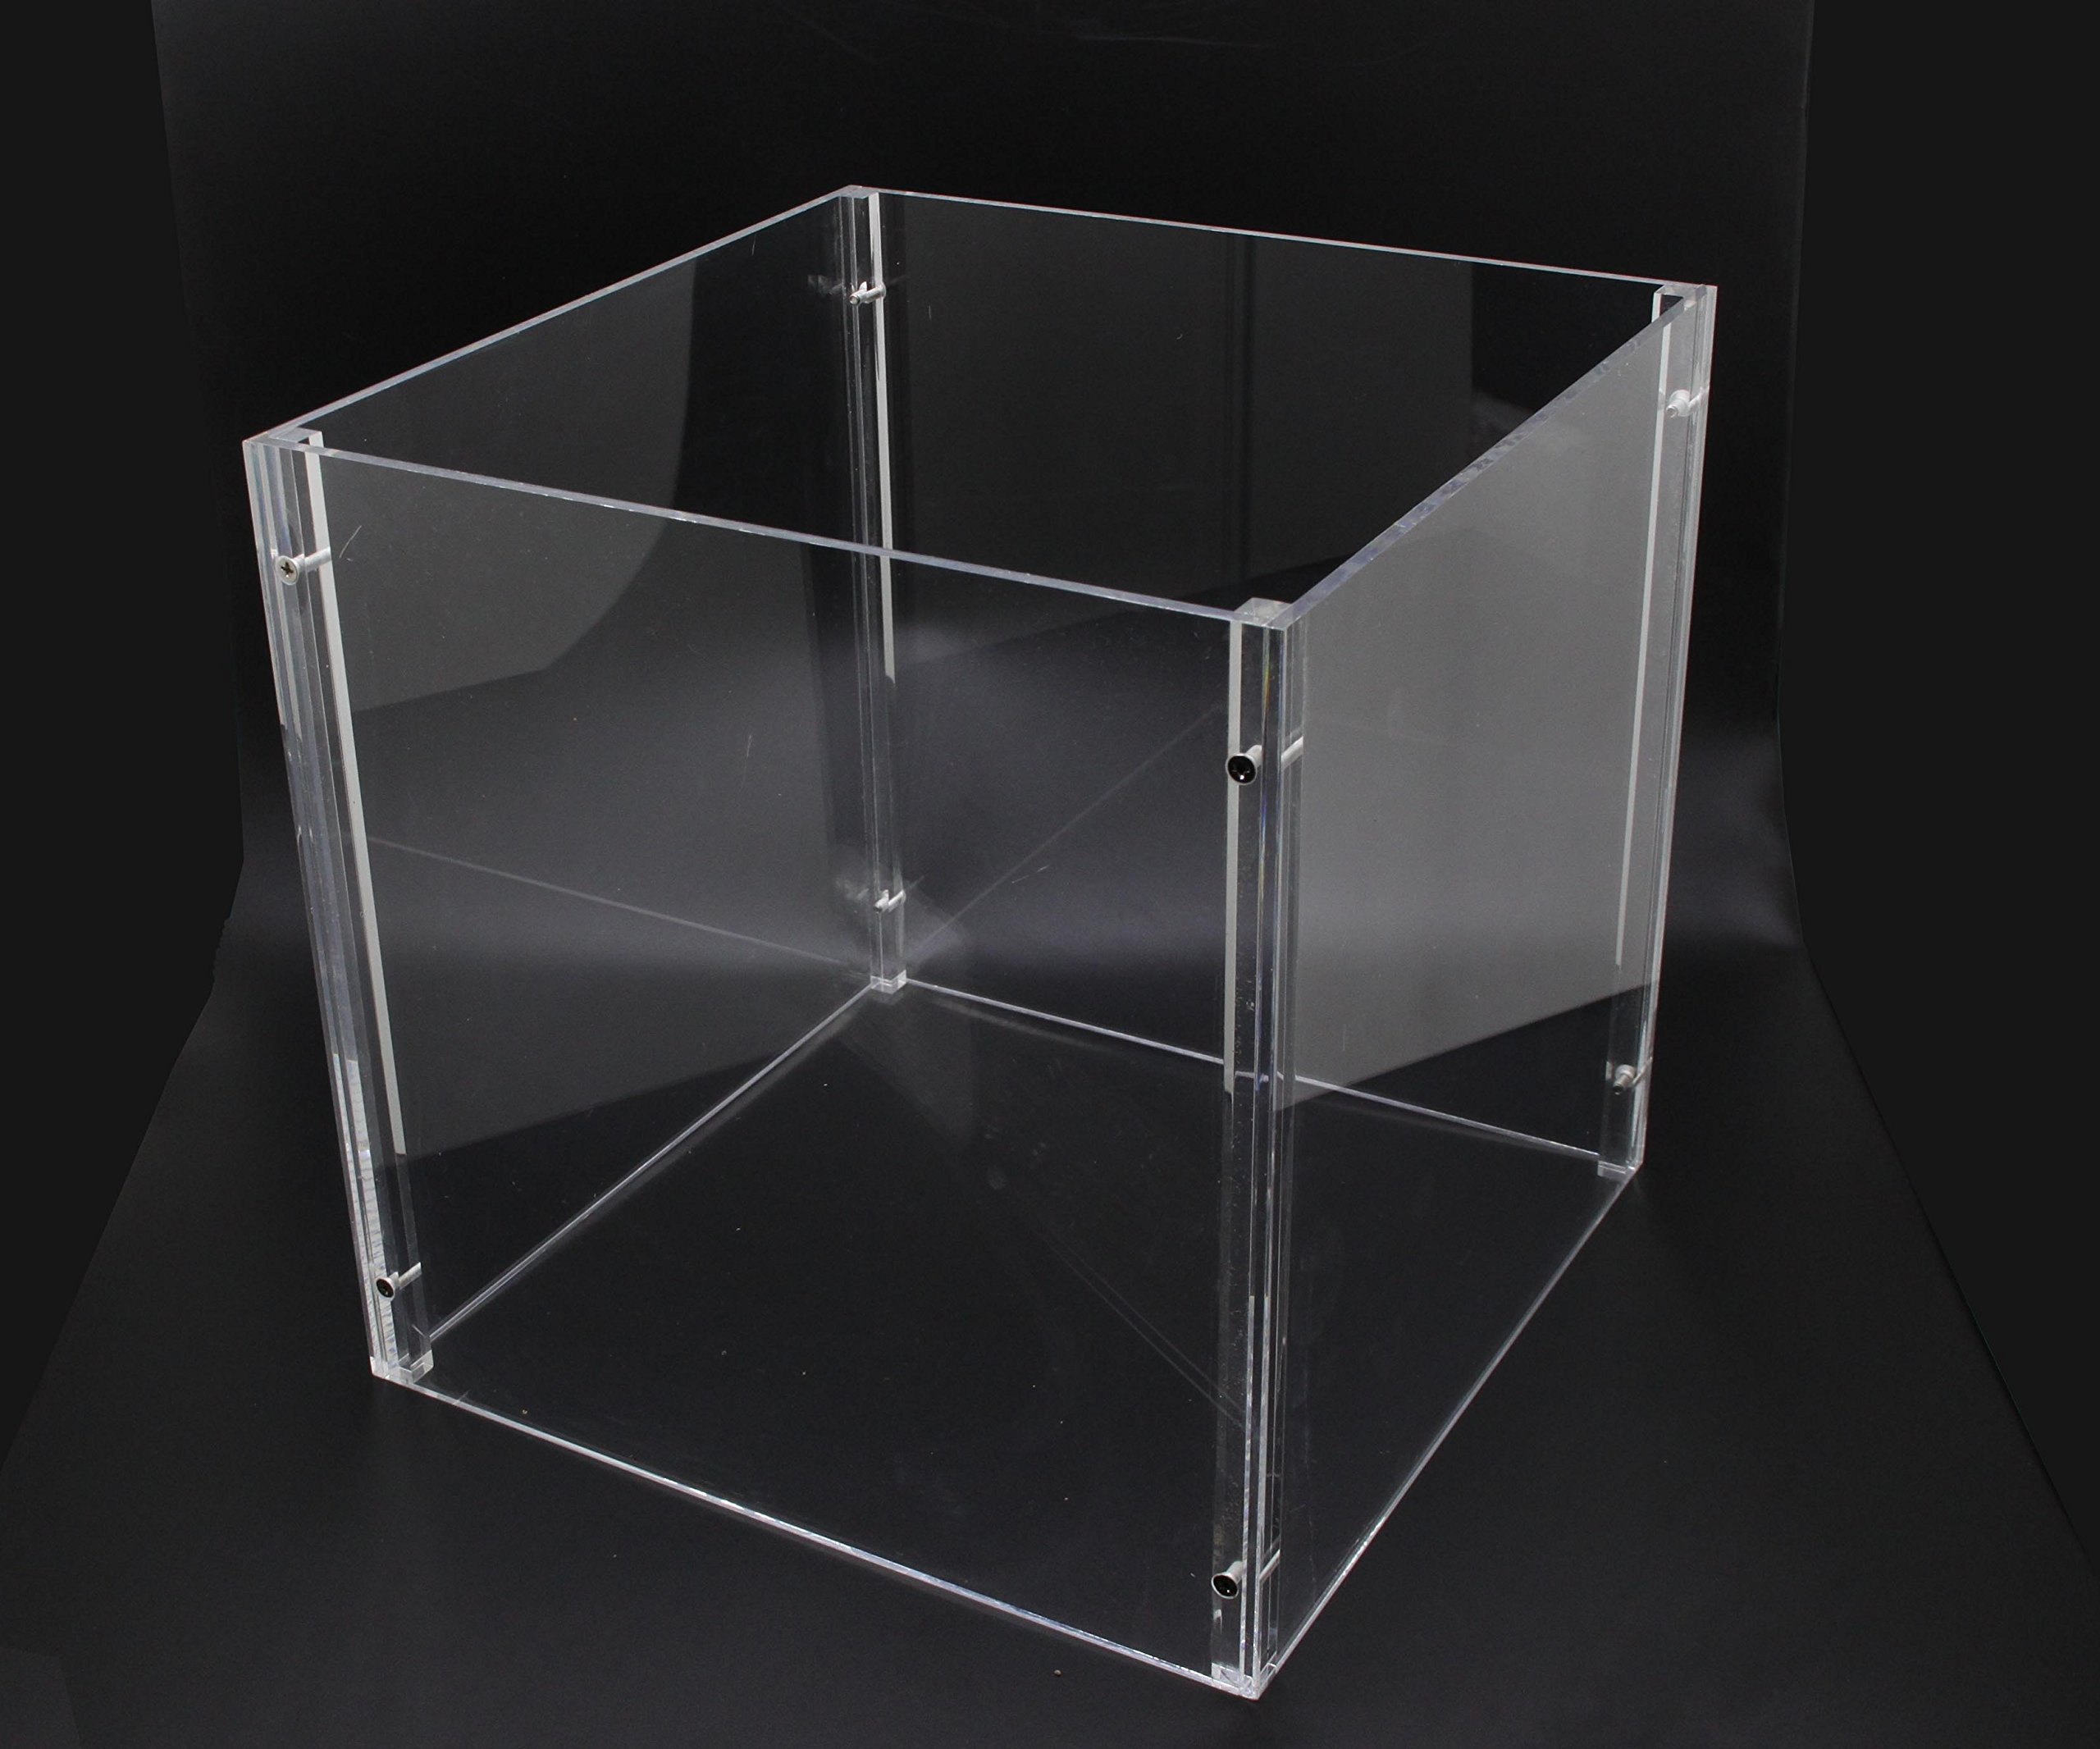 FixtureDisplays 4-Sided Separable Clear Plexiglass Acrylic Transparent 12'' Cube Display 4 T-Shirts, Clothing 13809